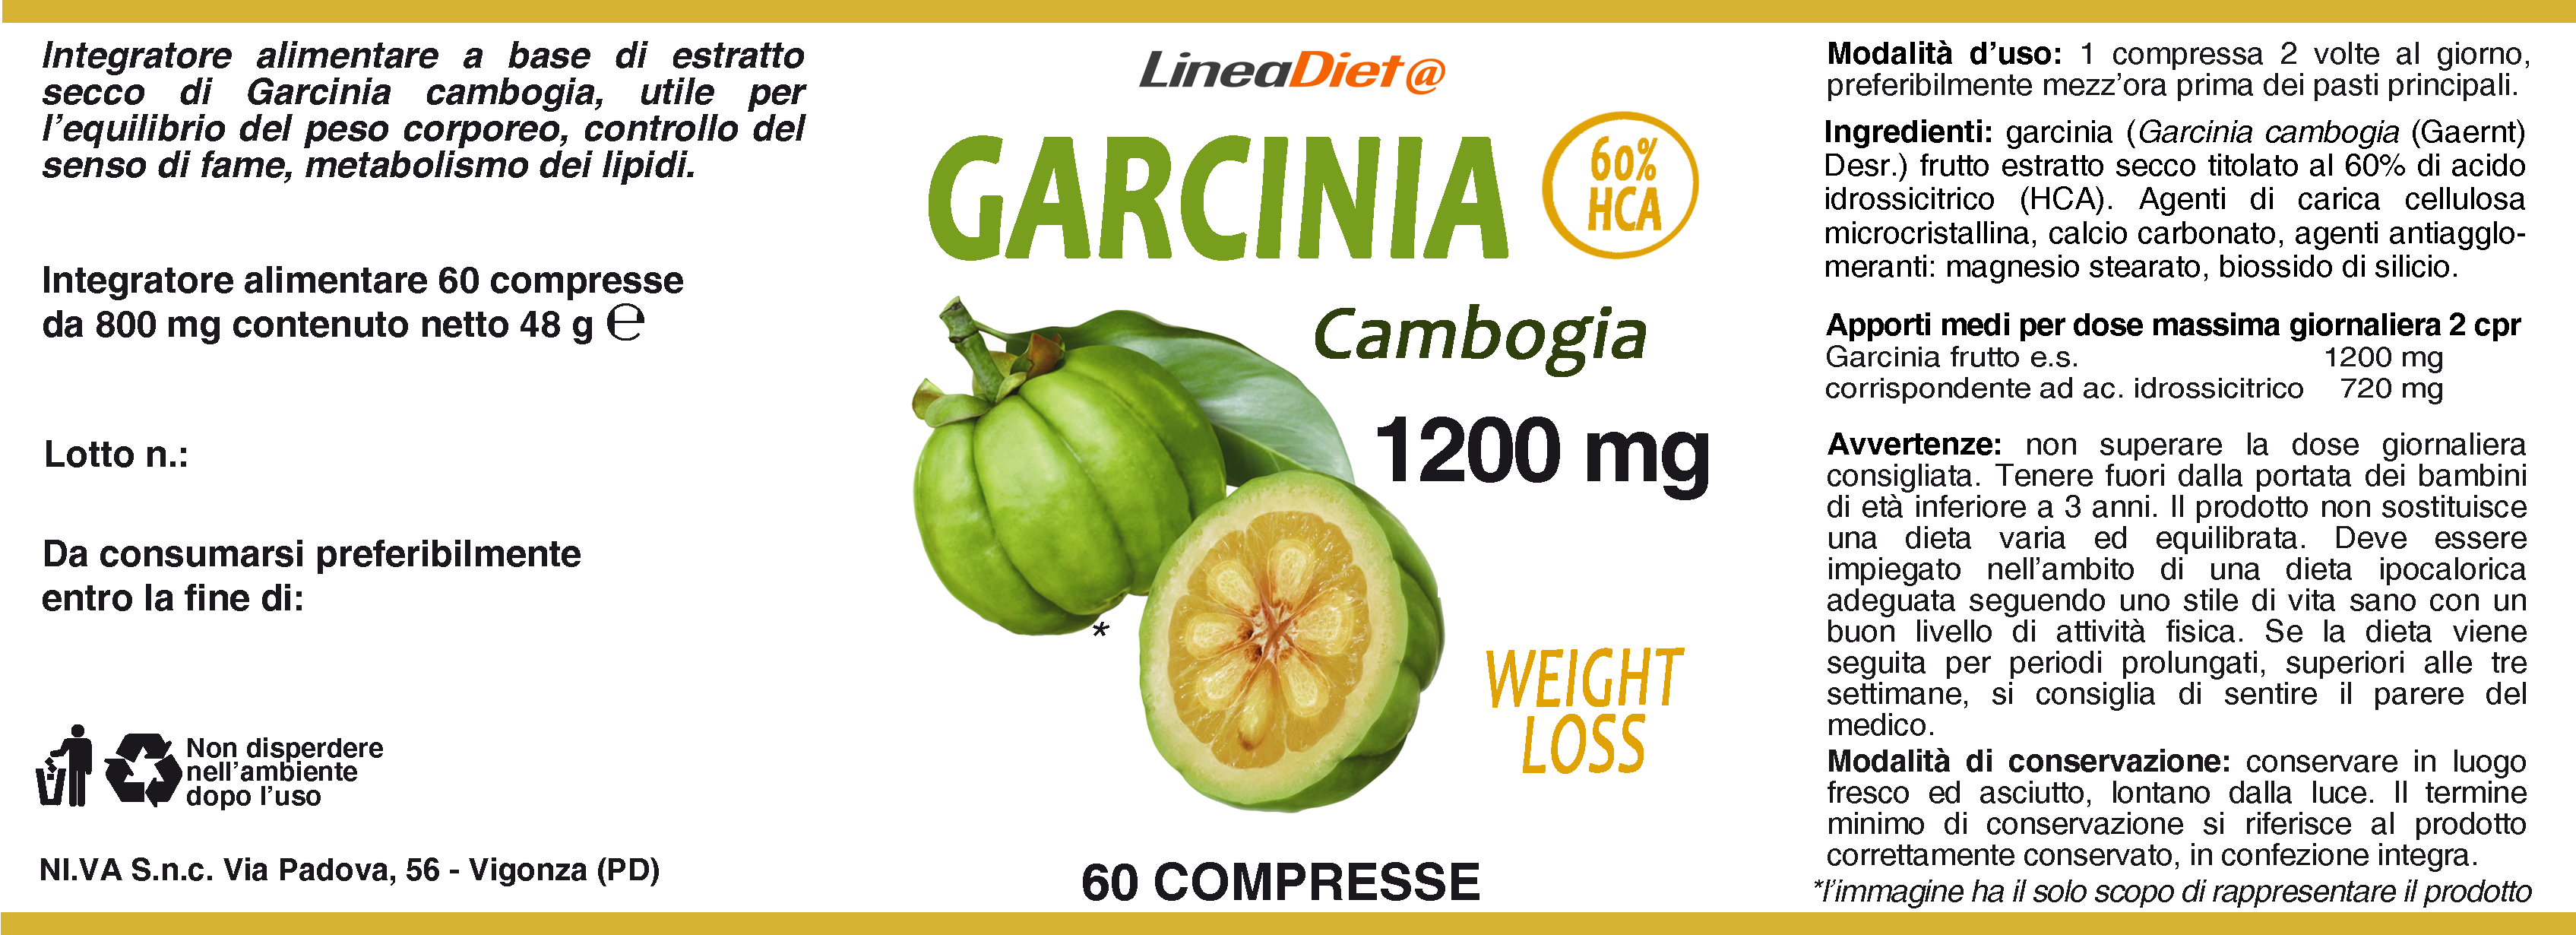 Core science medica llc garcinia cambogia reviews image 5